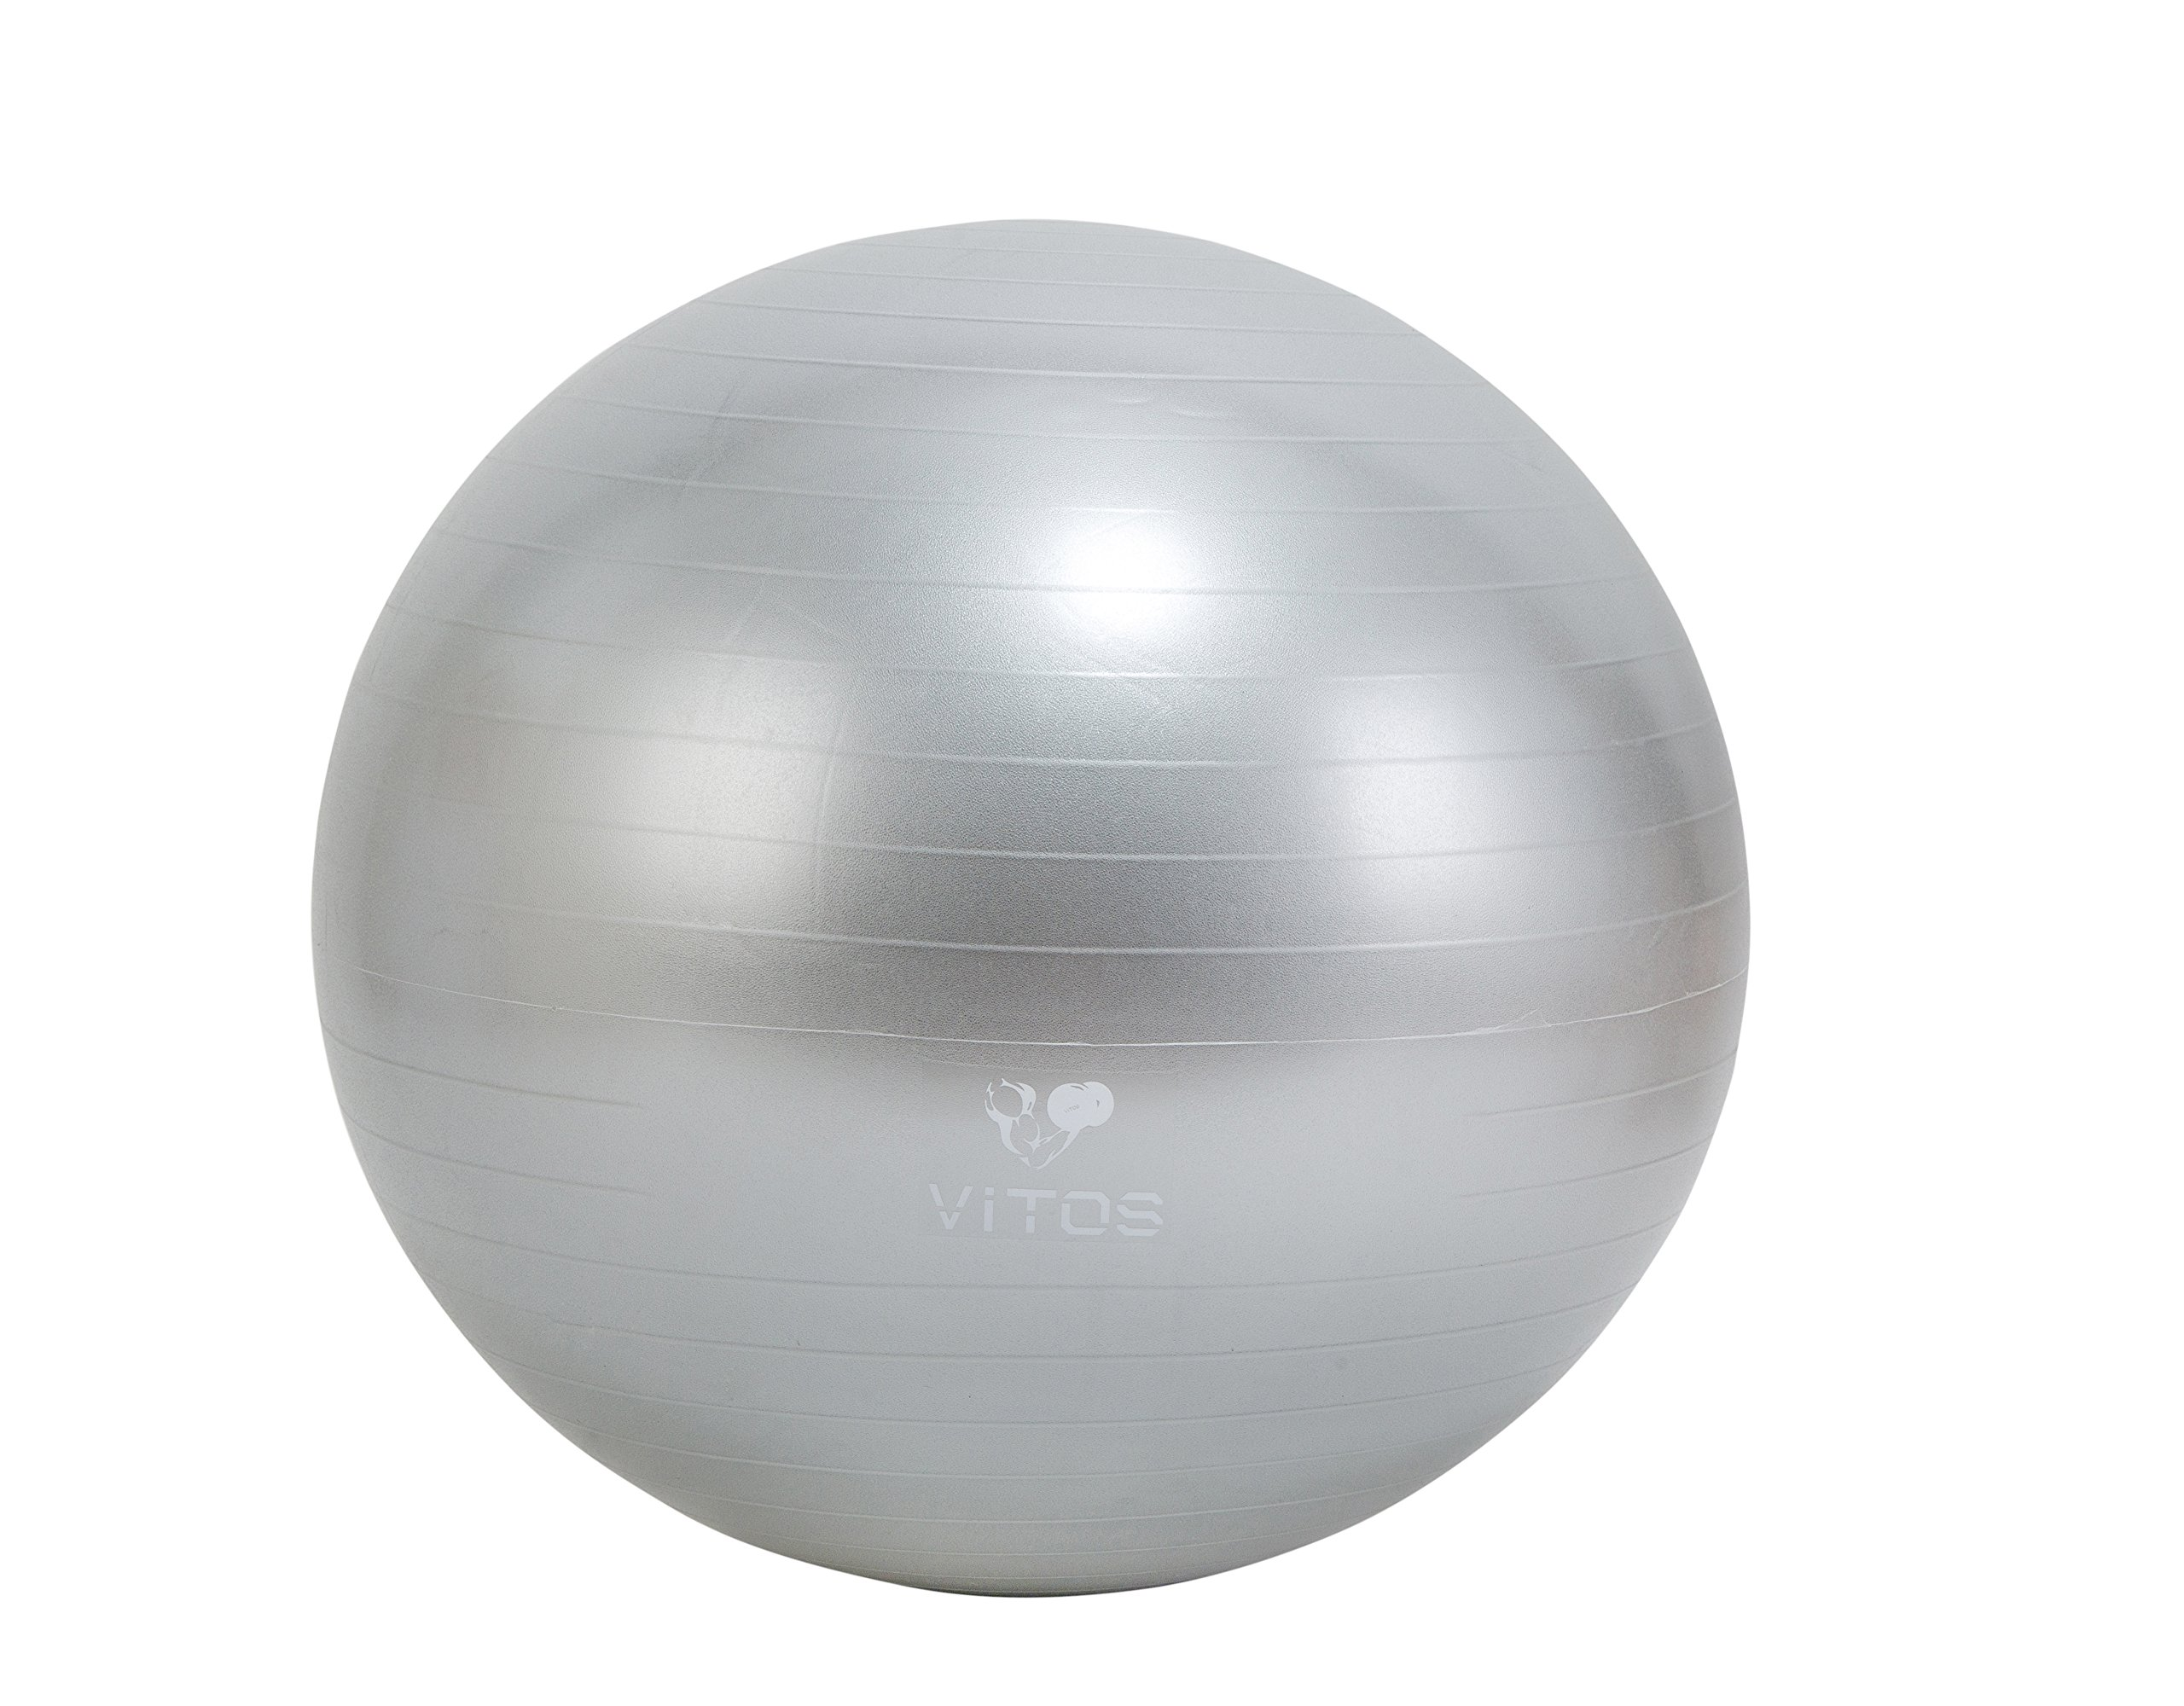 Vitos Fitness Anti Burst Stability Ball Extra Thick Non Slip Supports 2200LB for Fitness Exercise Birth Balance Yoga Workout Guide Quick Pump Included Professional Quality Design (Silver, 75 cm)